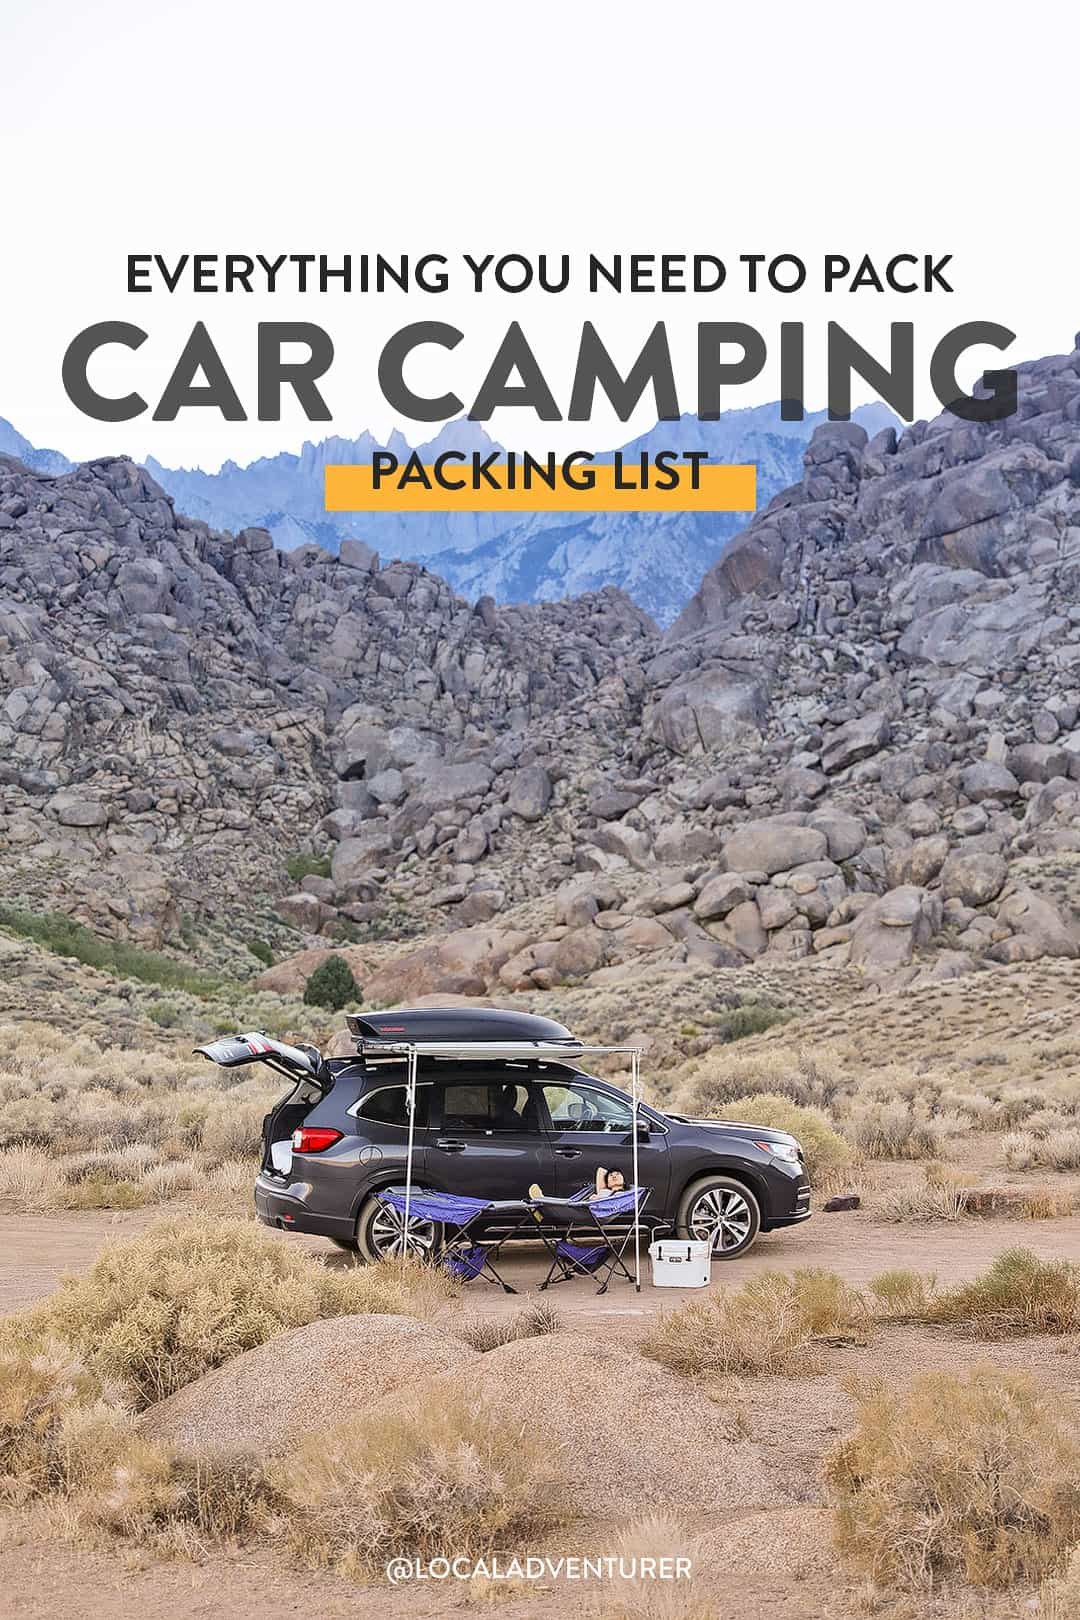 21 Car Camping Essentials - Everything You Need to Pack